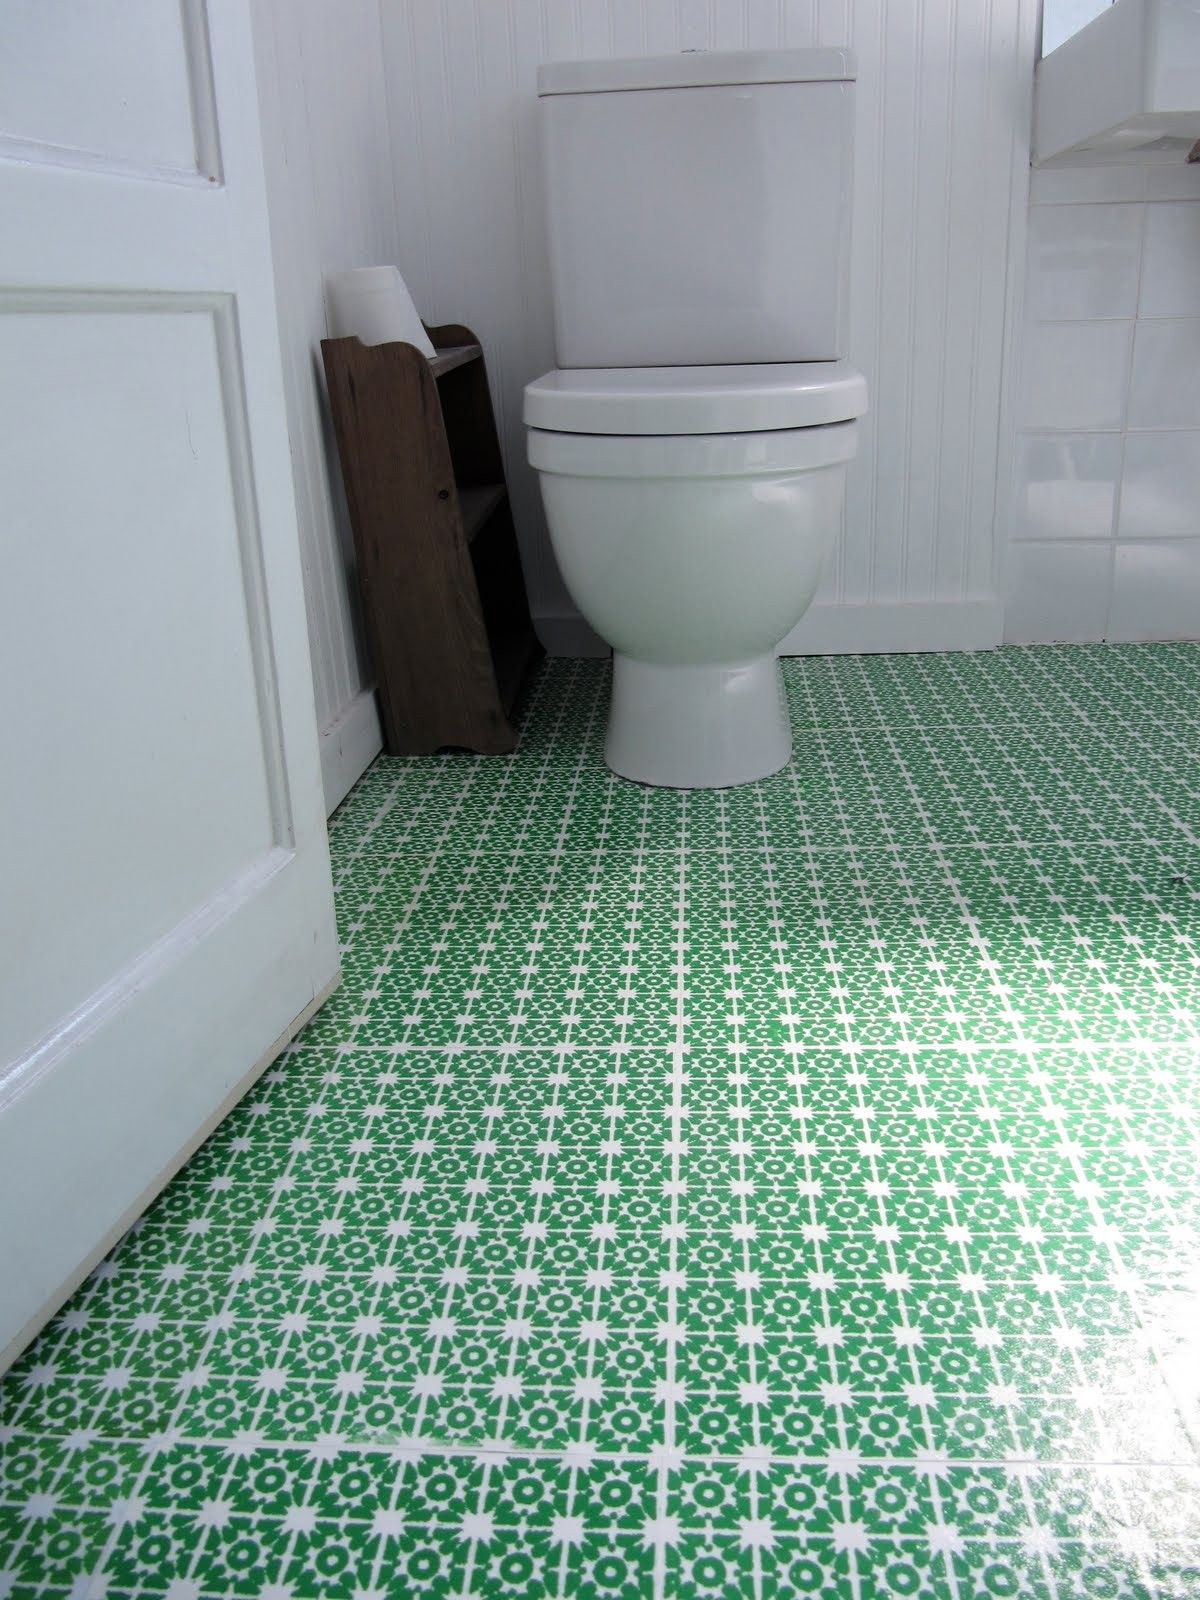 Beautiful Patterned Green Bathroom Vinyl Flooring For White Room Interior Decorations